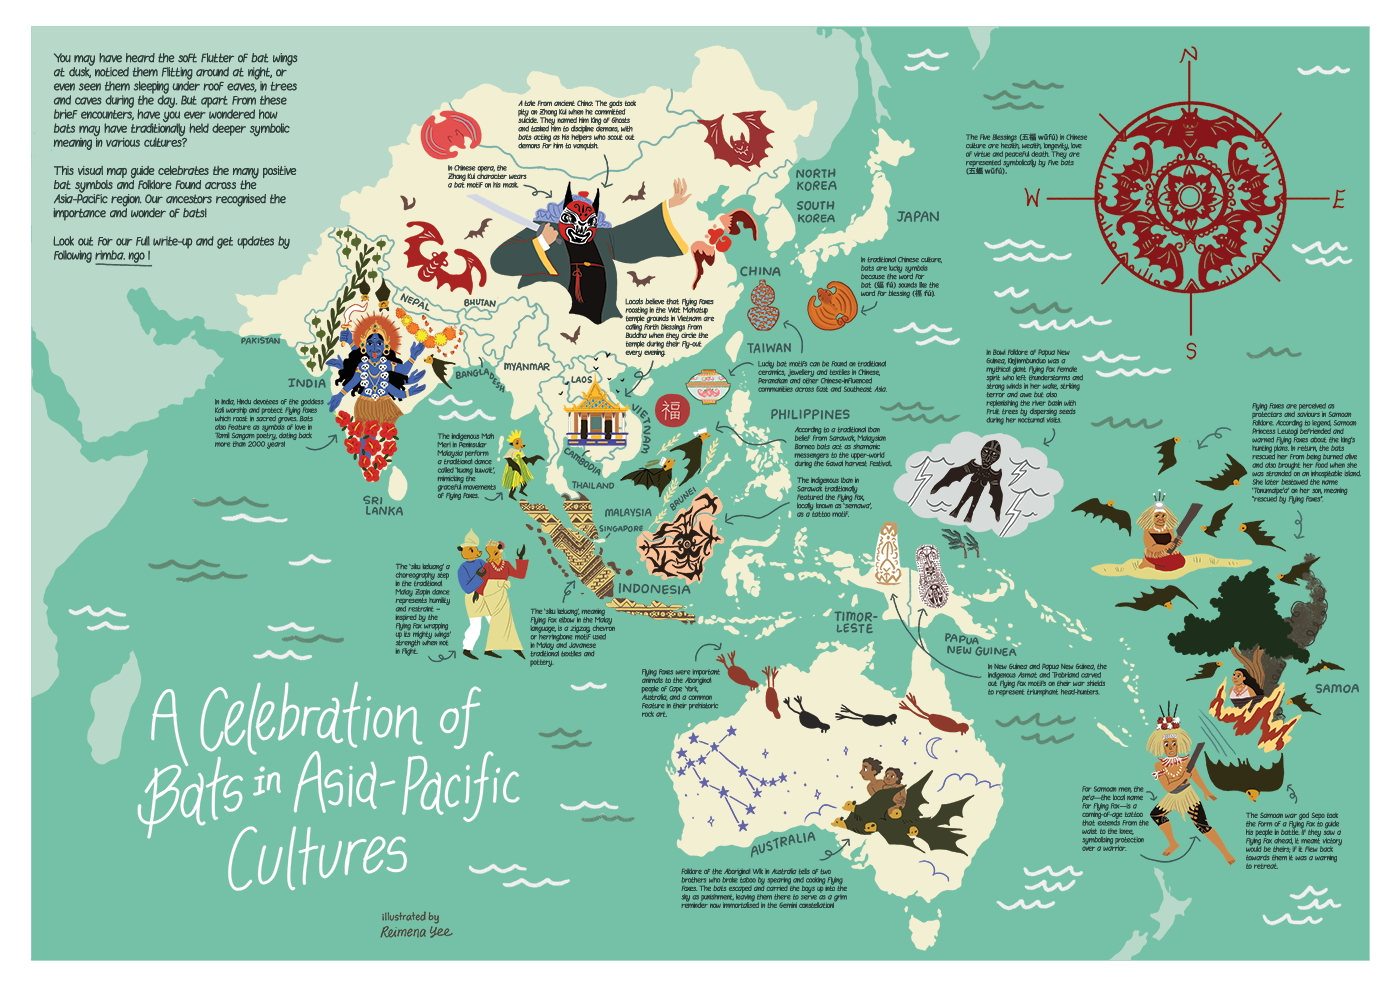 Illustrated map of bats in Asia Pacific cultures